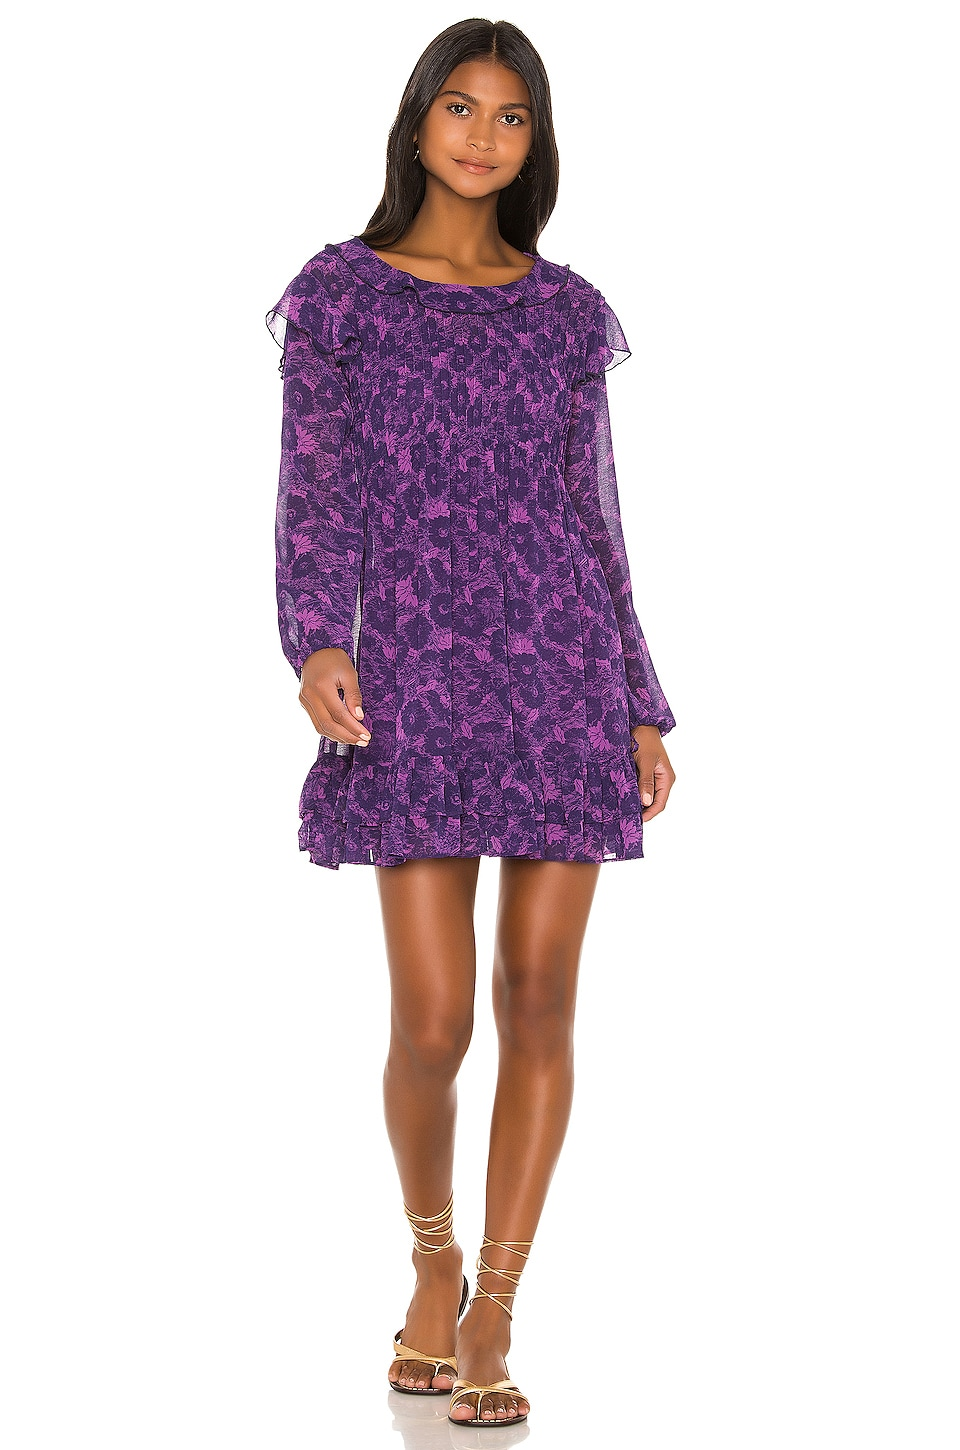 Free People These Dreams Mini Dress in Violet